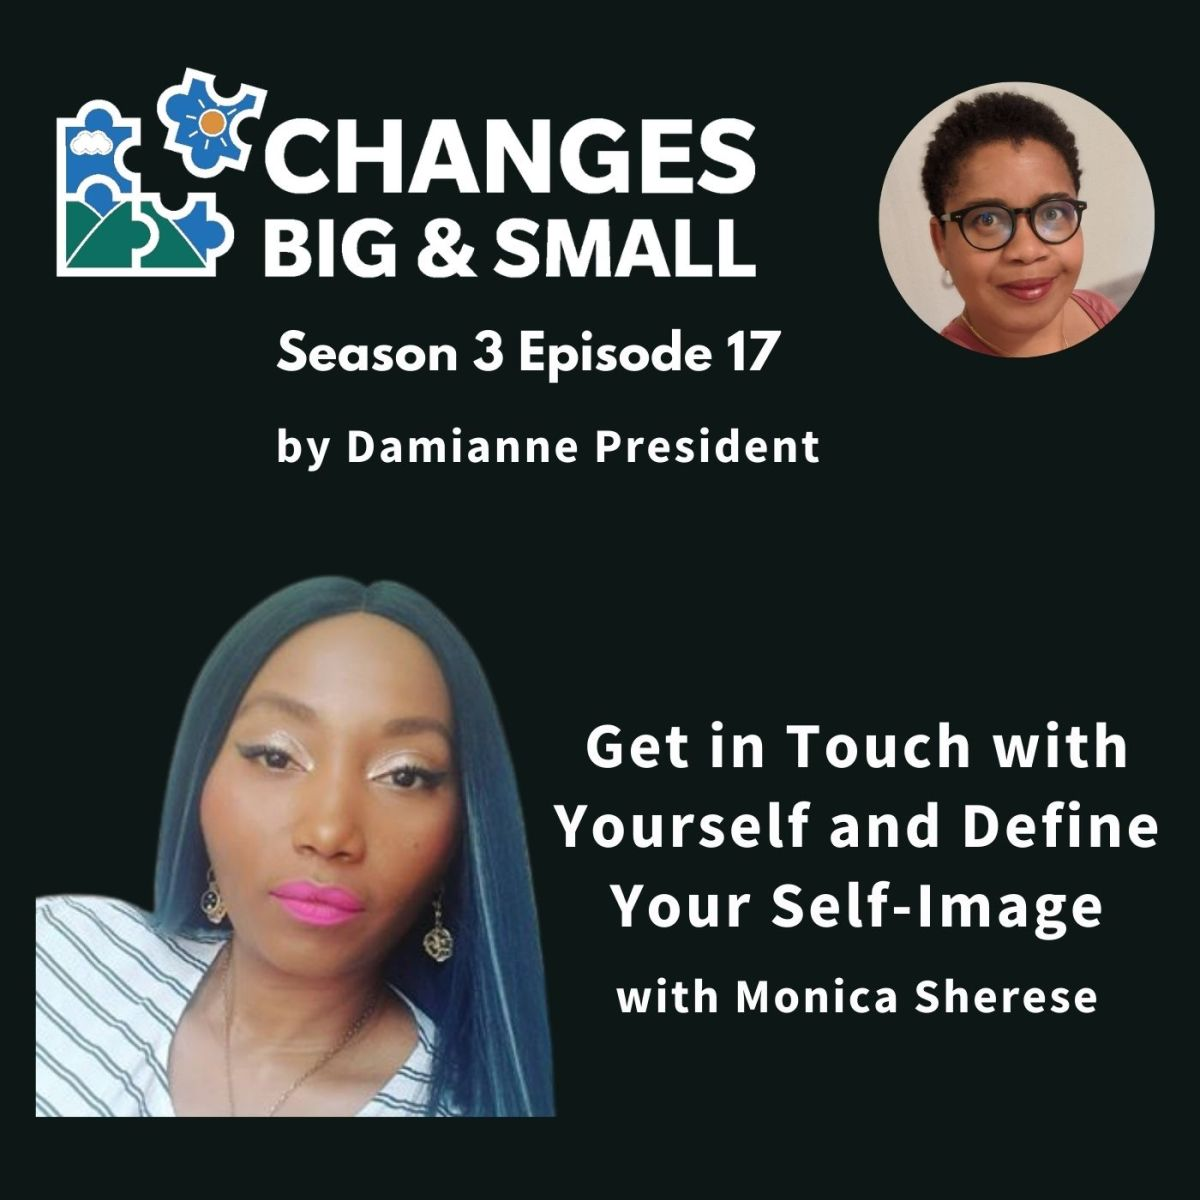 episode 71 podcst cover for Changes Big and Small on how to get in touch with yourself and define your self image with monica sherese